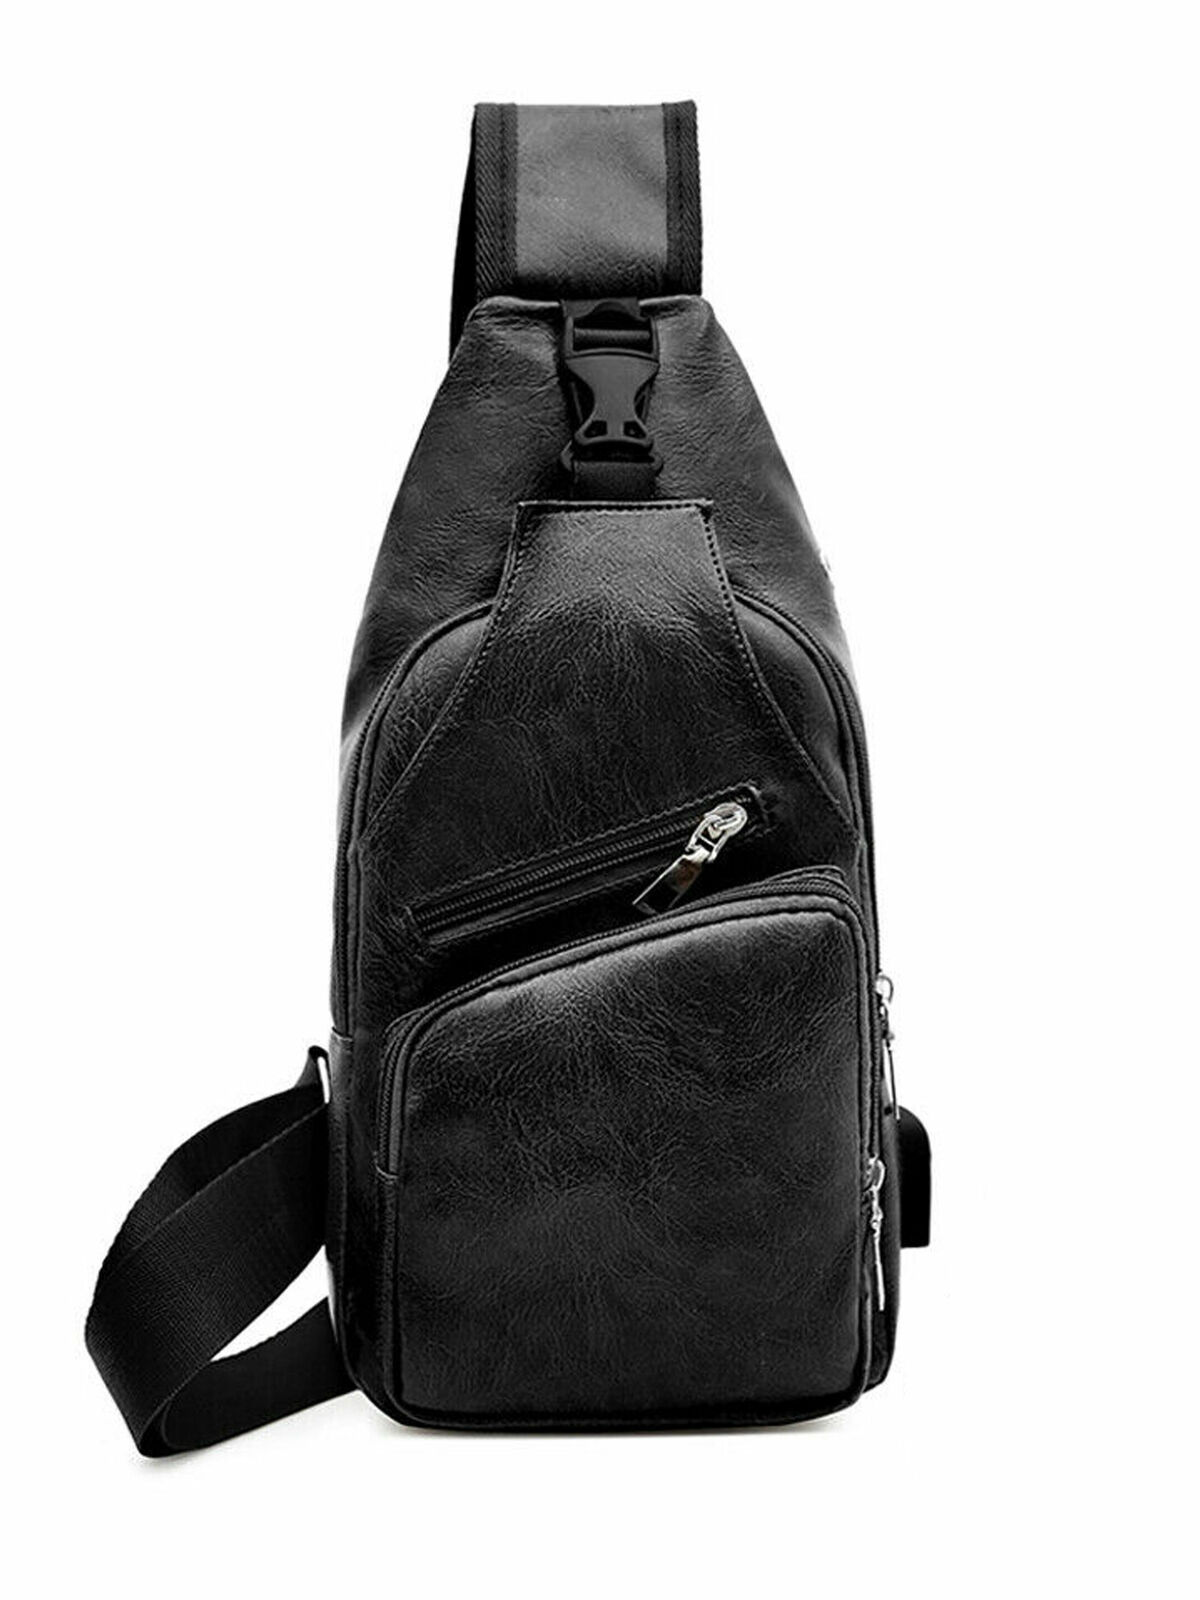 Men Leather Phone Belt Pack with Earphone Port Crossbody Chest Bag Shoulder Bag